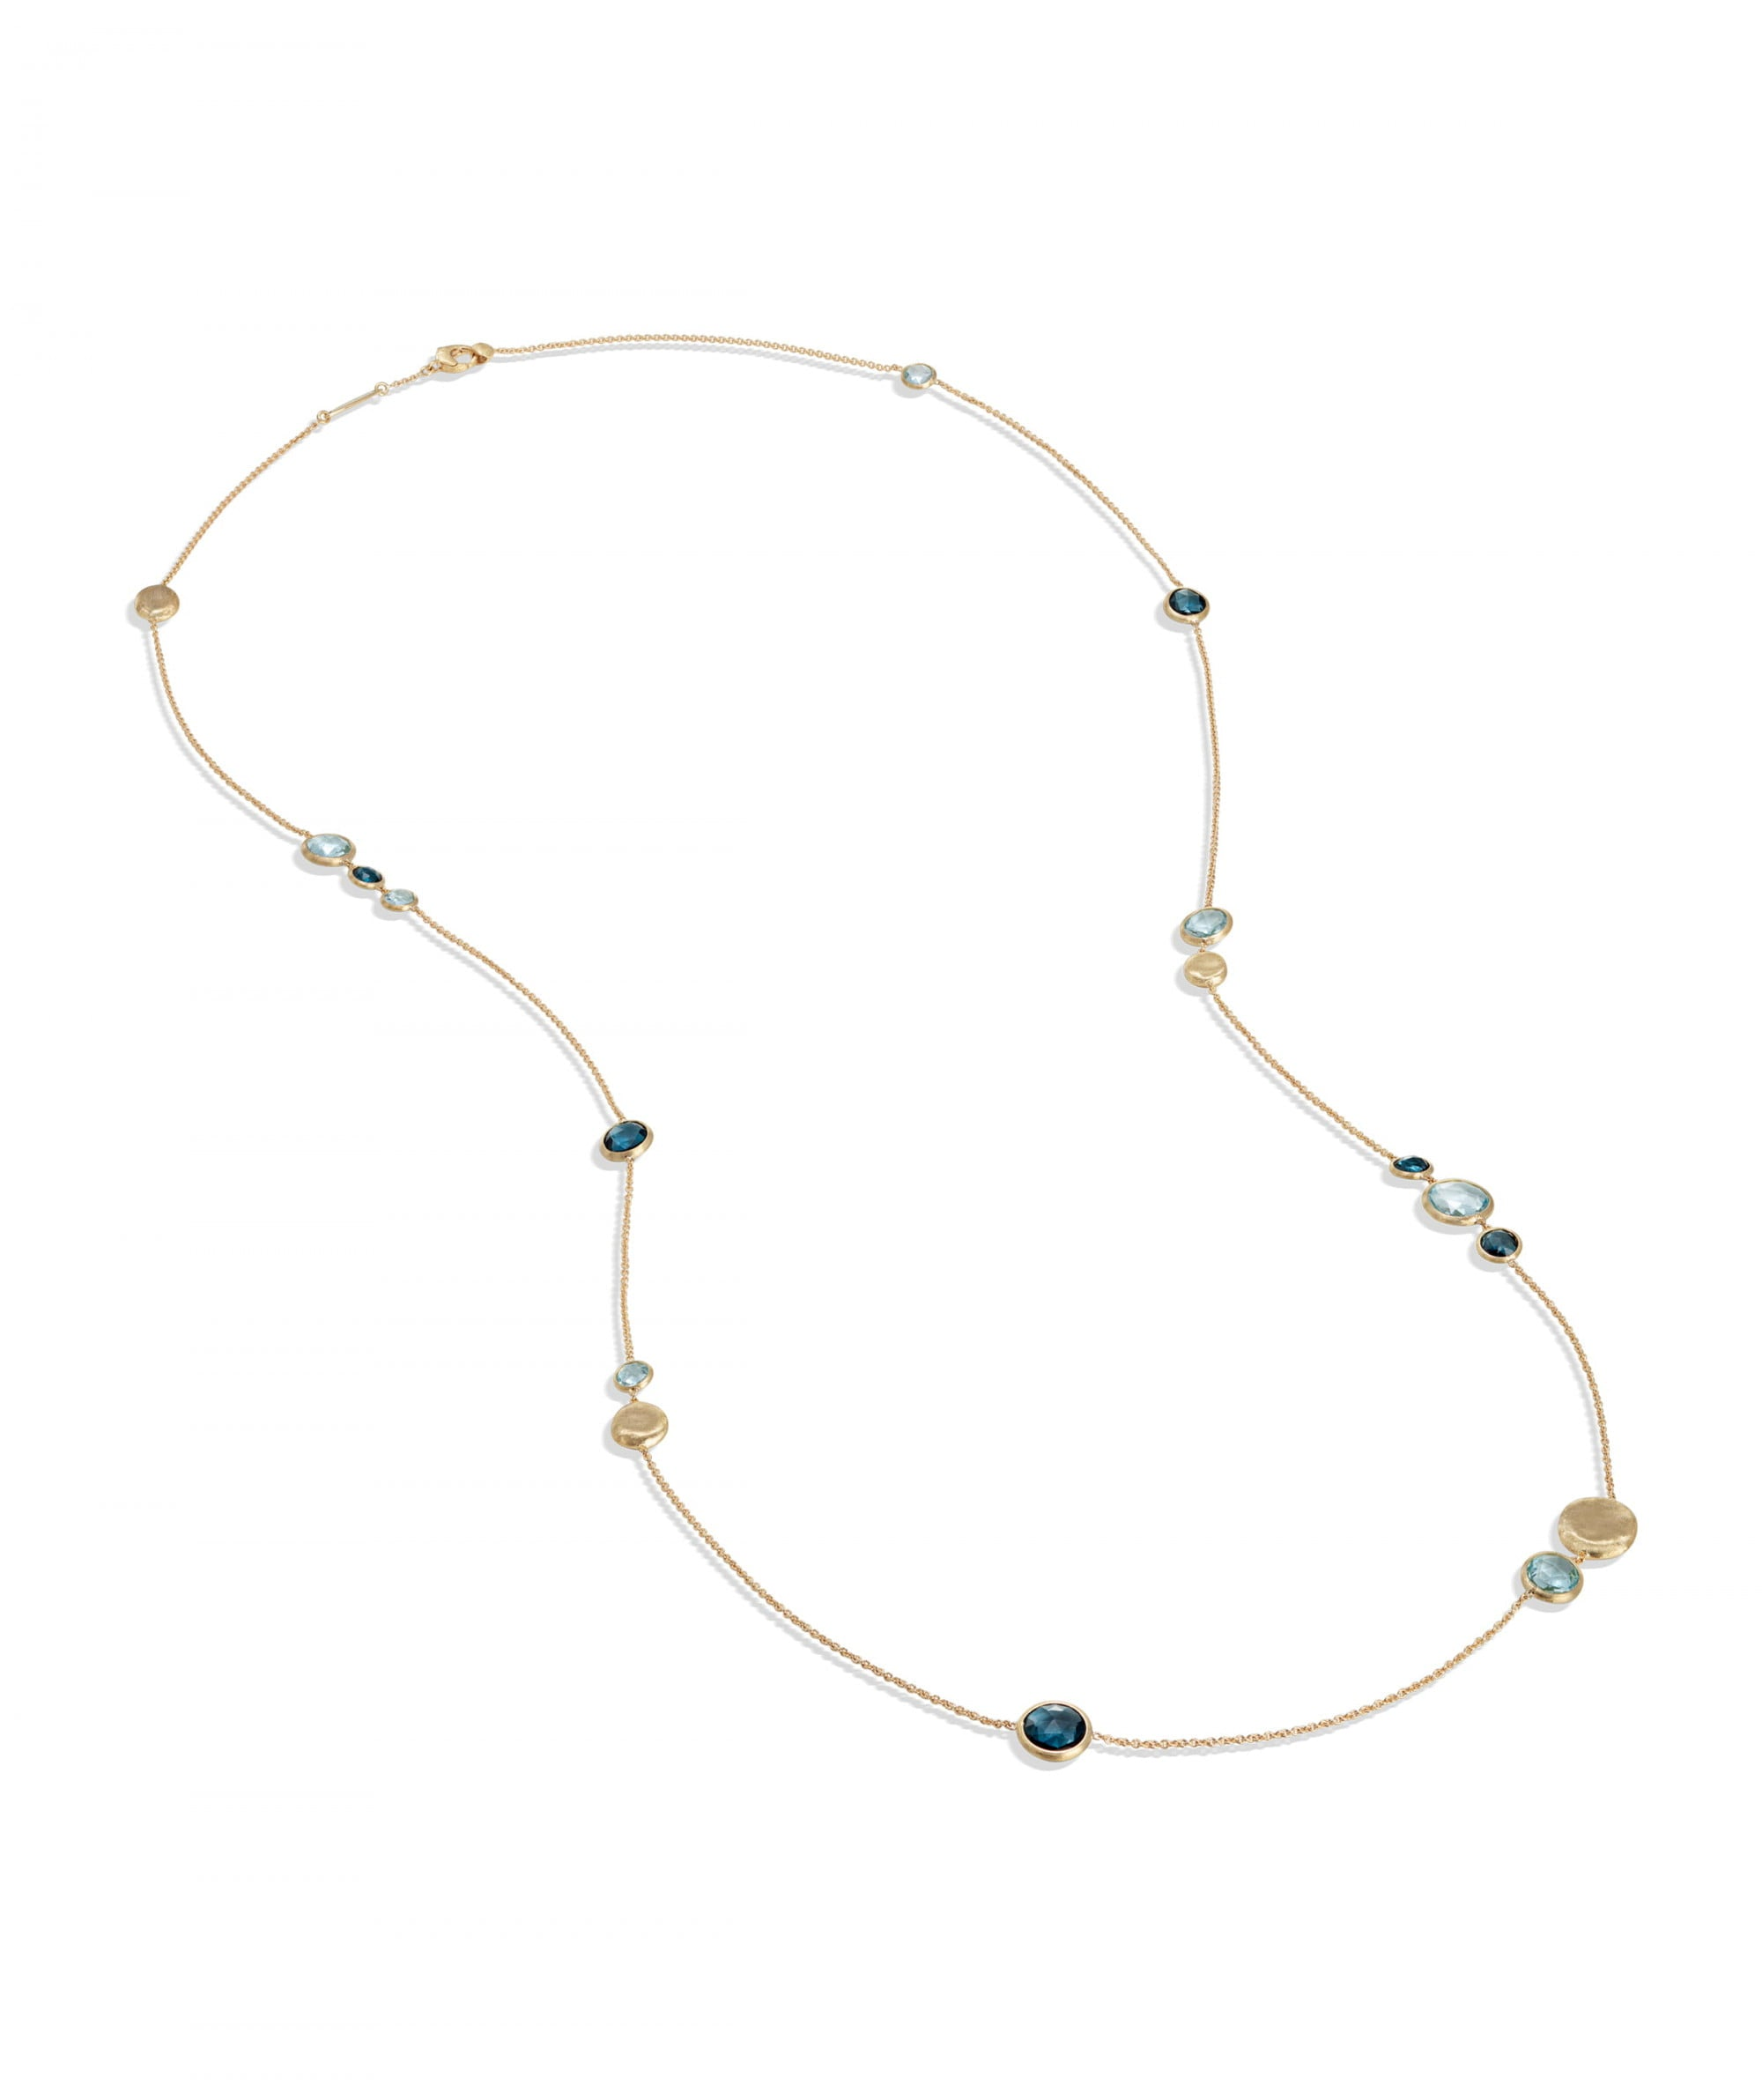 Jaipur Colour Necklace in 18k Yellow Gold with Gemstones Mixed Blue Long - Orsini Jewellers NZ